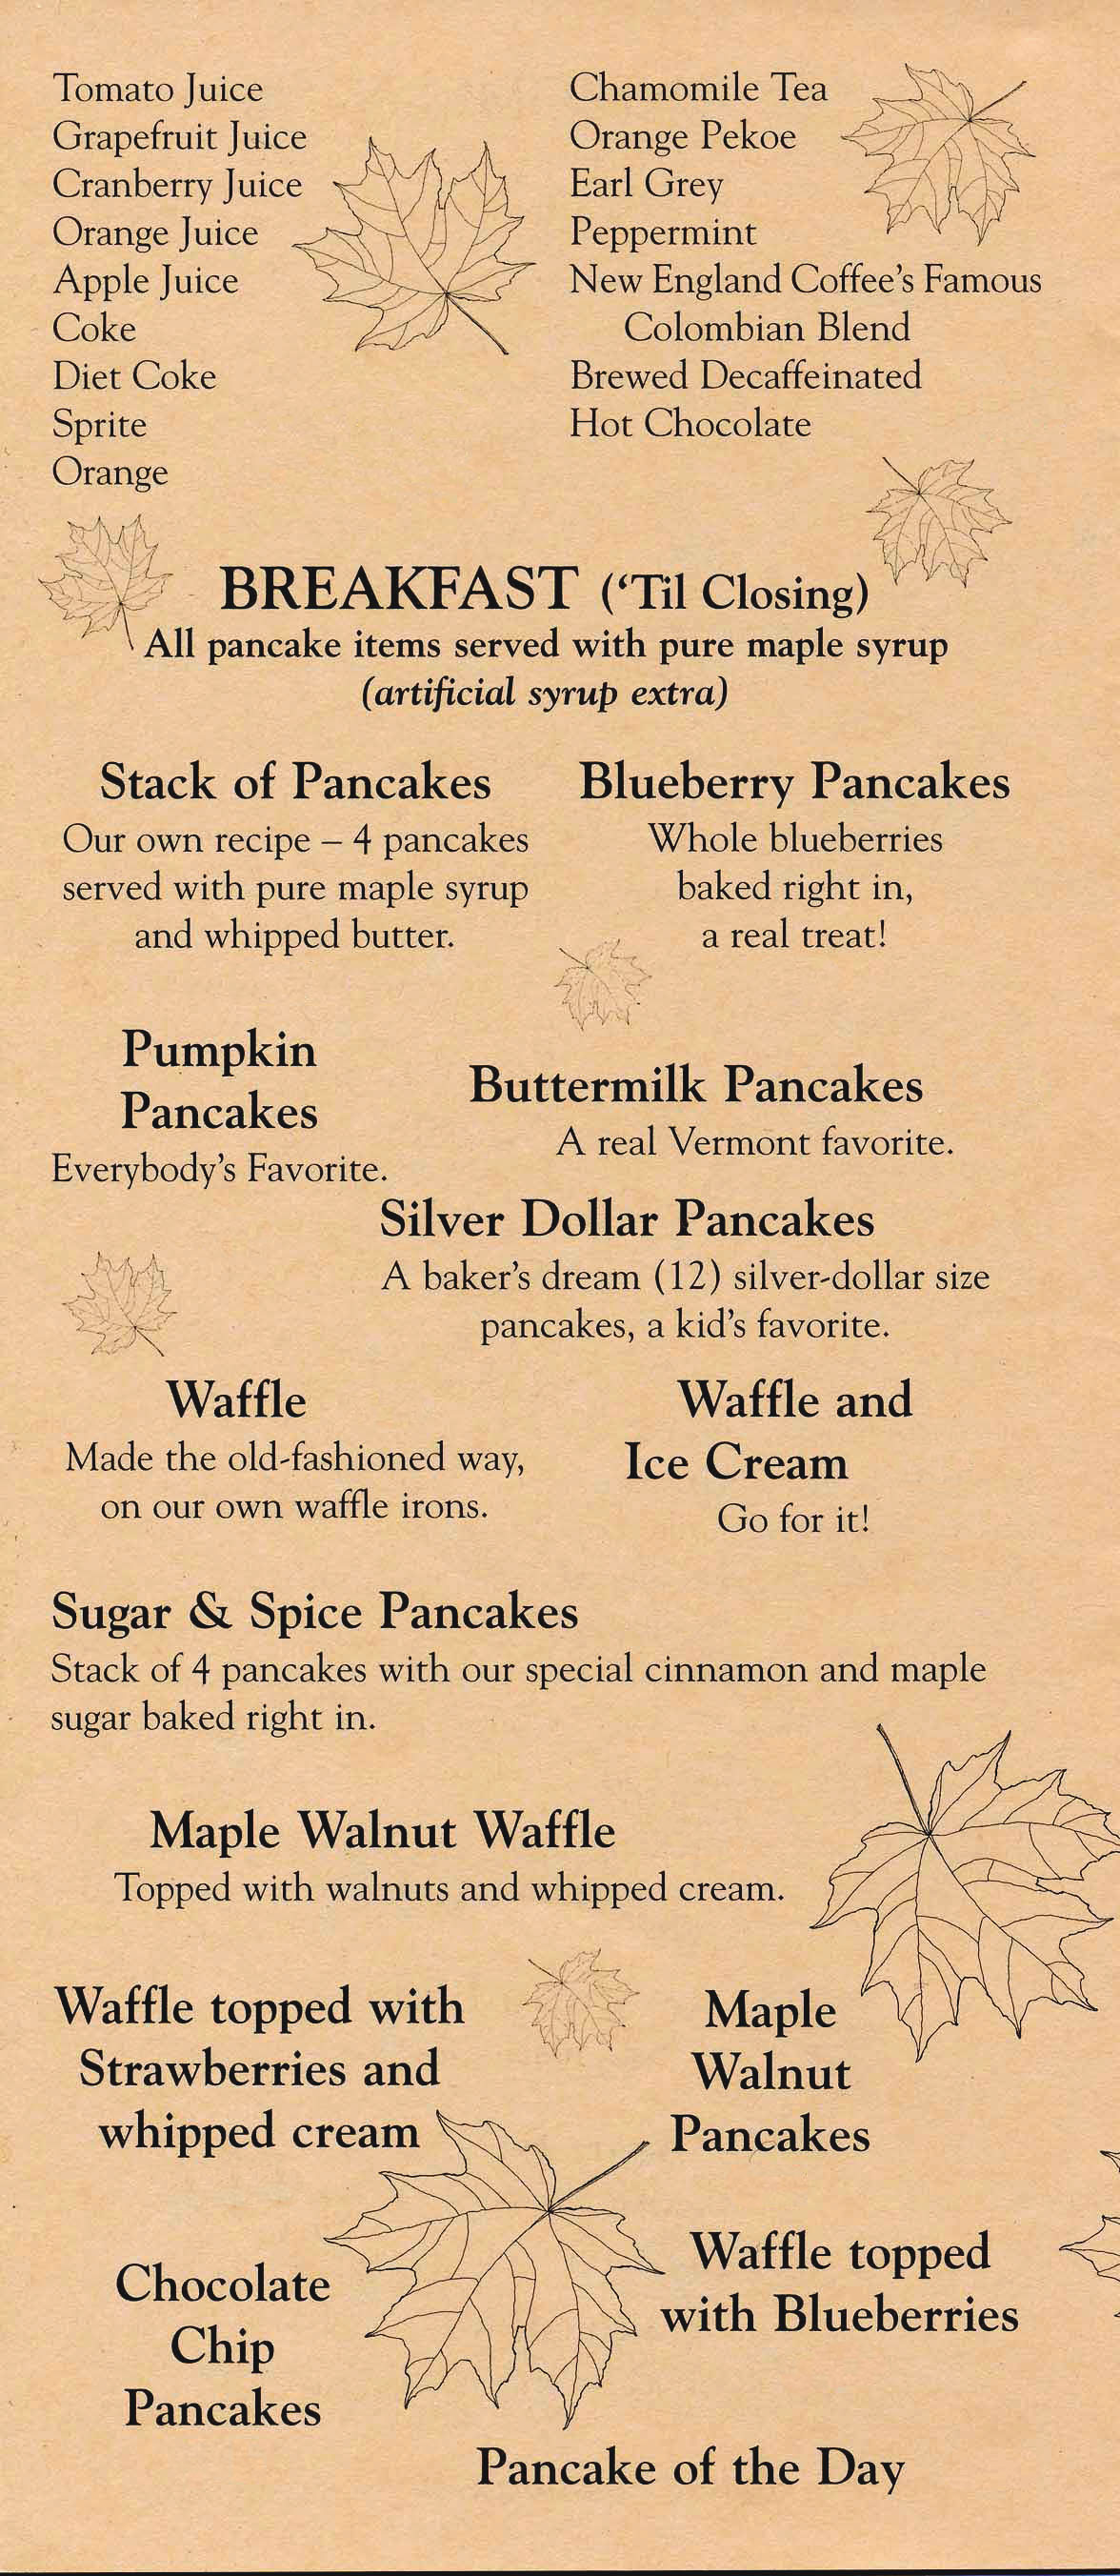 Sugar and Spice Menu - Breakfast Page 1